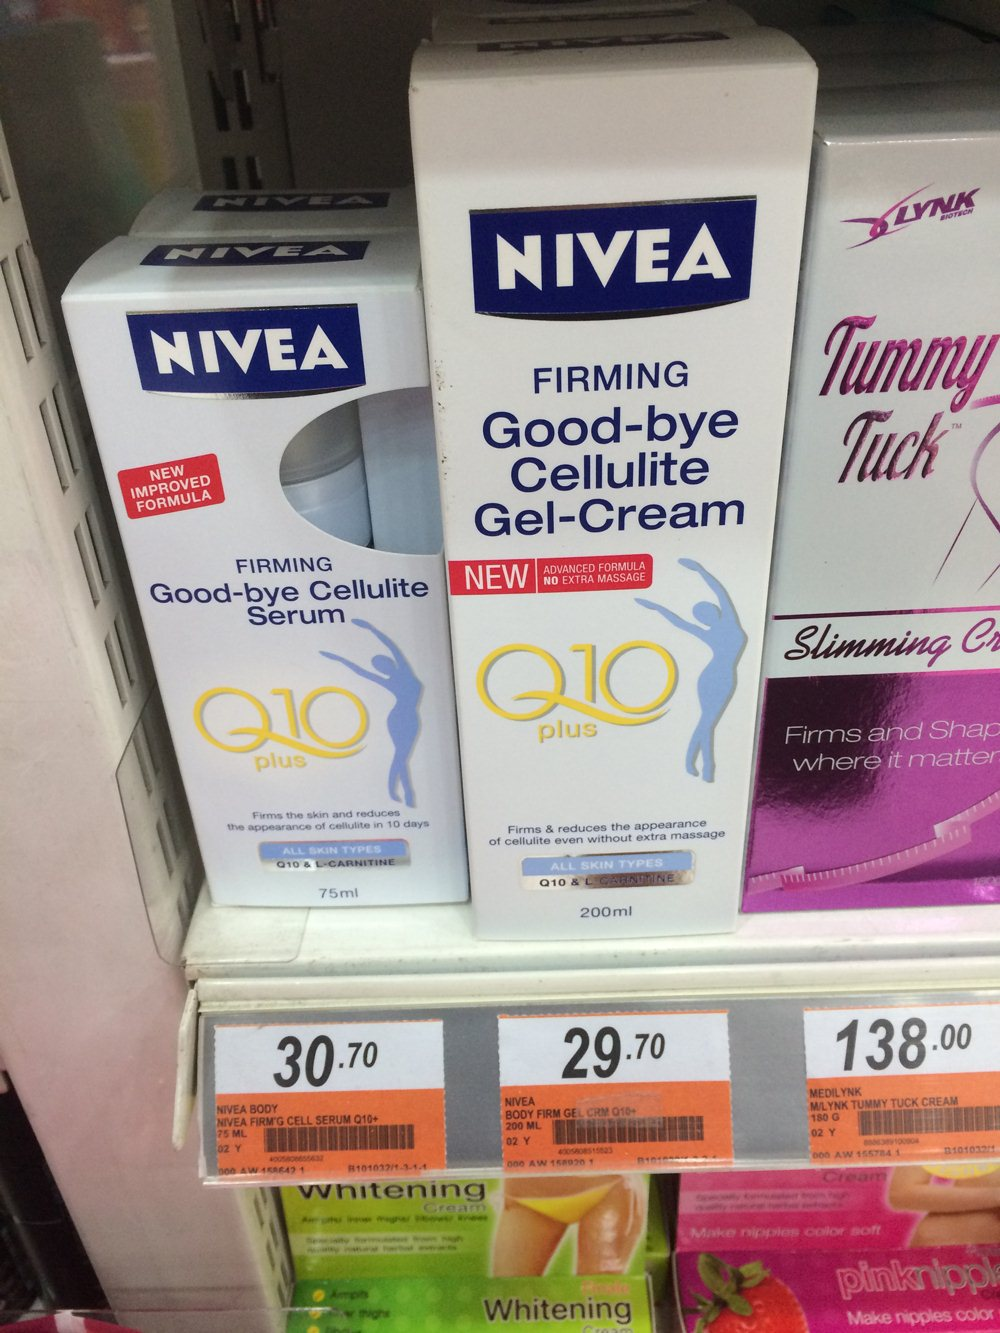 Nivea Q10 Firming Lotion Coupon Juicy Couture Printable 2018 Body Extra White Firm Smooth 200ml Get Free Coupons For Prescription And Save Up To 75 At Your Local Pharmacynivea Skin Toning Gel Cream With Plus